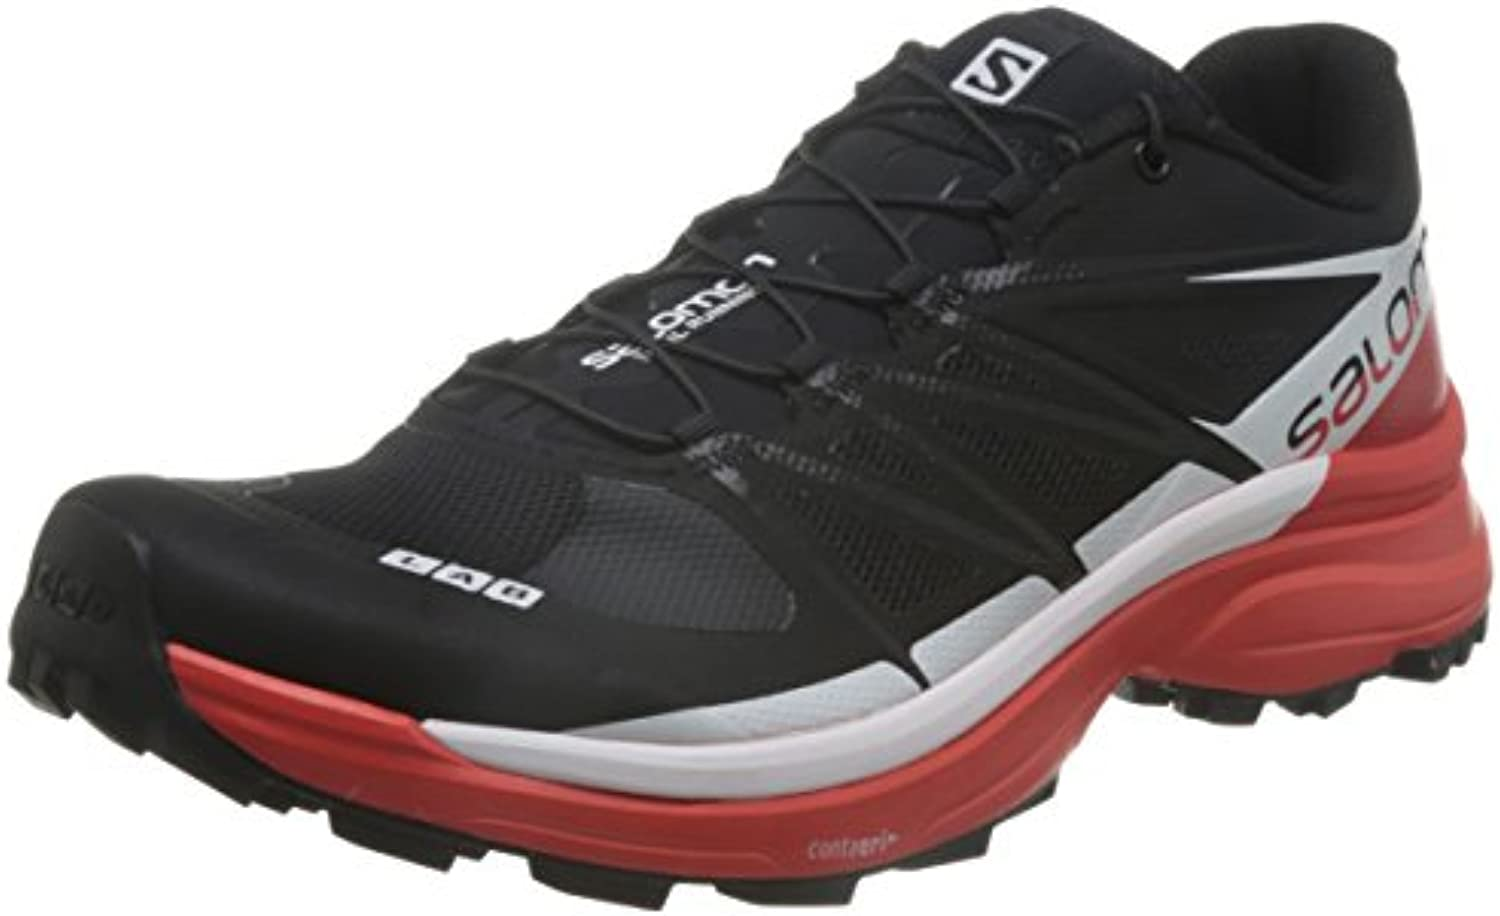 Salomon L39195900, Zapatillas de Senderismo Unisex Adulto  -